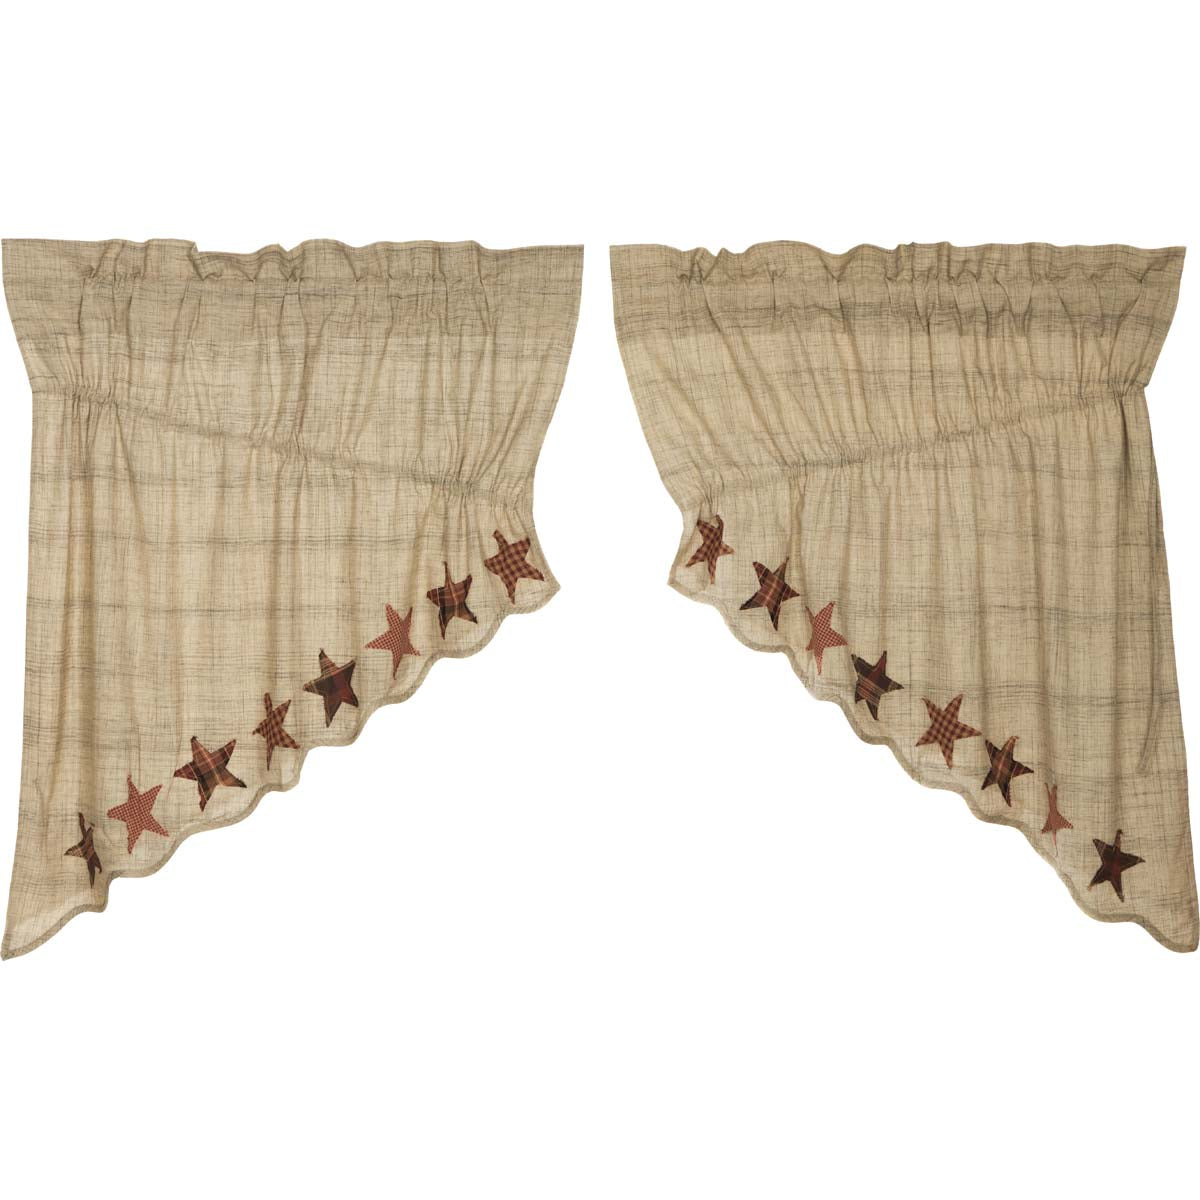 Abilene Star Prairie Swag Set of 2 36x36x18 - Woodrol